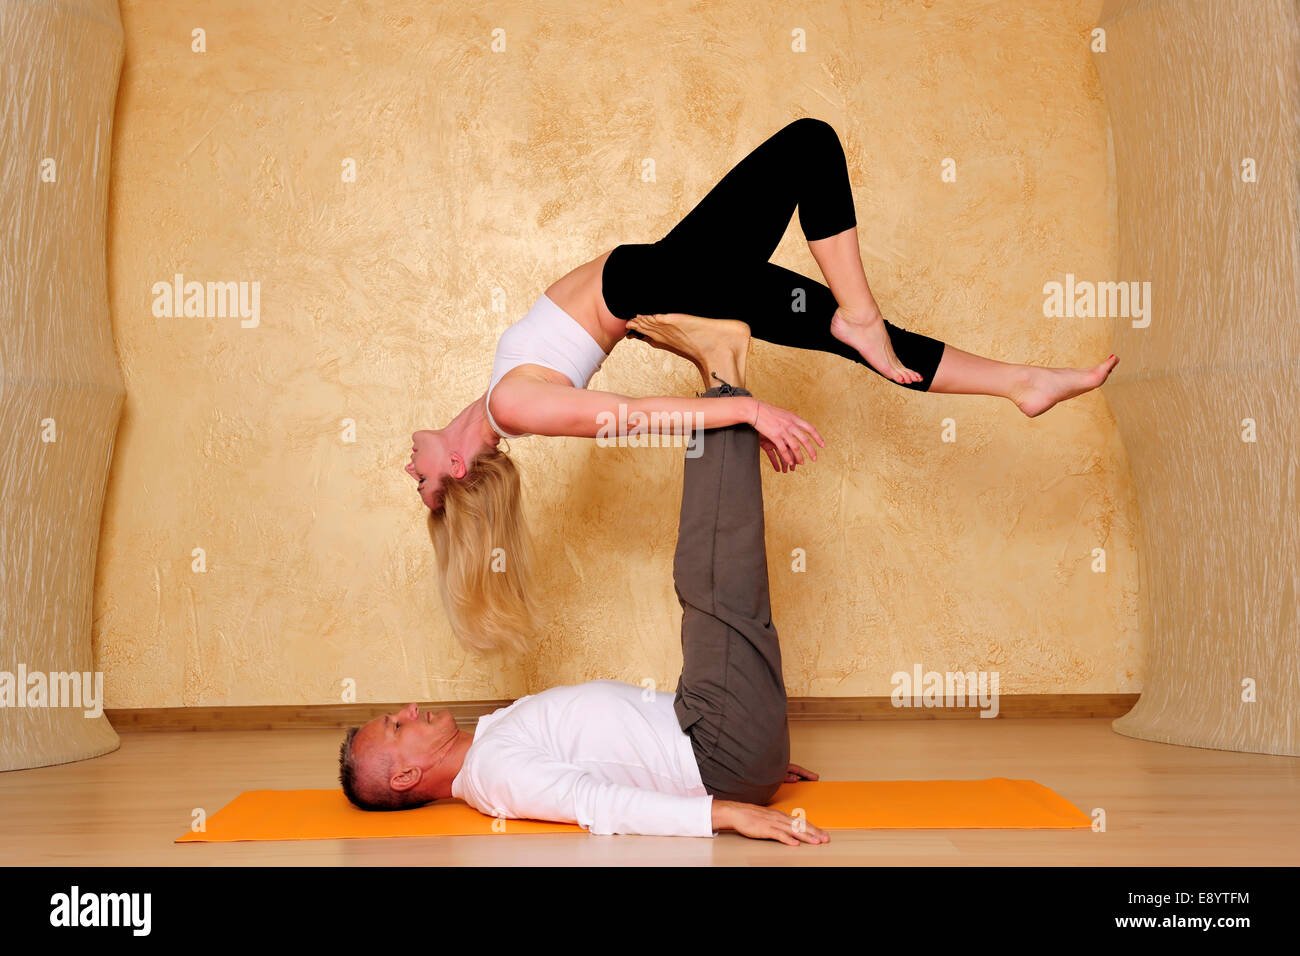 active, aerial, aero, air, antigravity, anti-gravity, arts, asana, balance, beauty - Stock Image